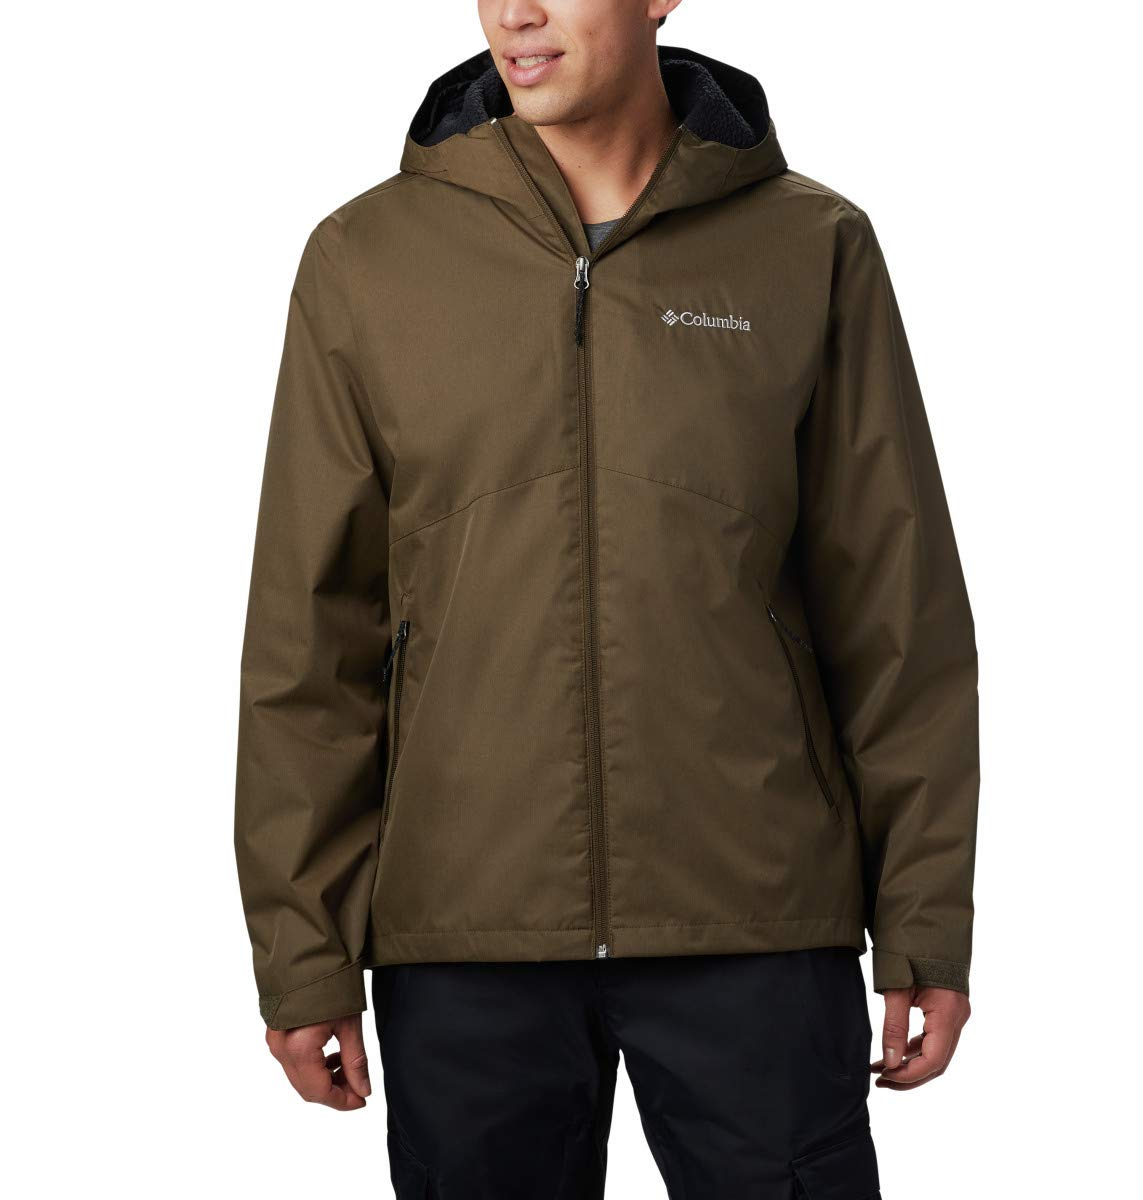 Columbia Men's Rainie Falls Jacket, Large, Olive Green by Columbia